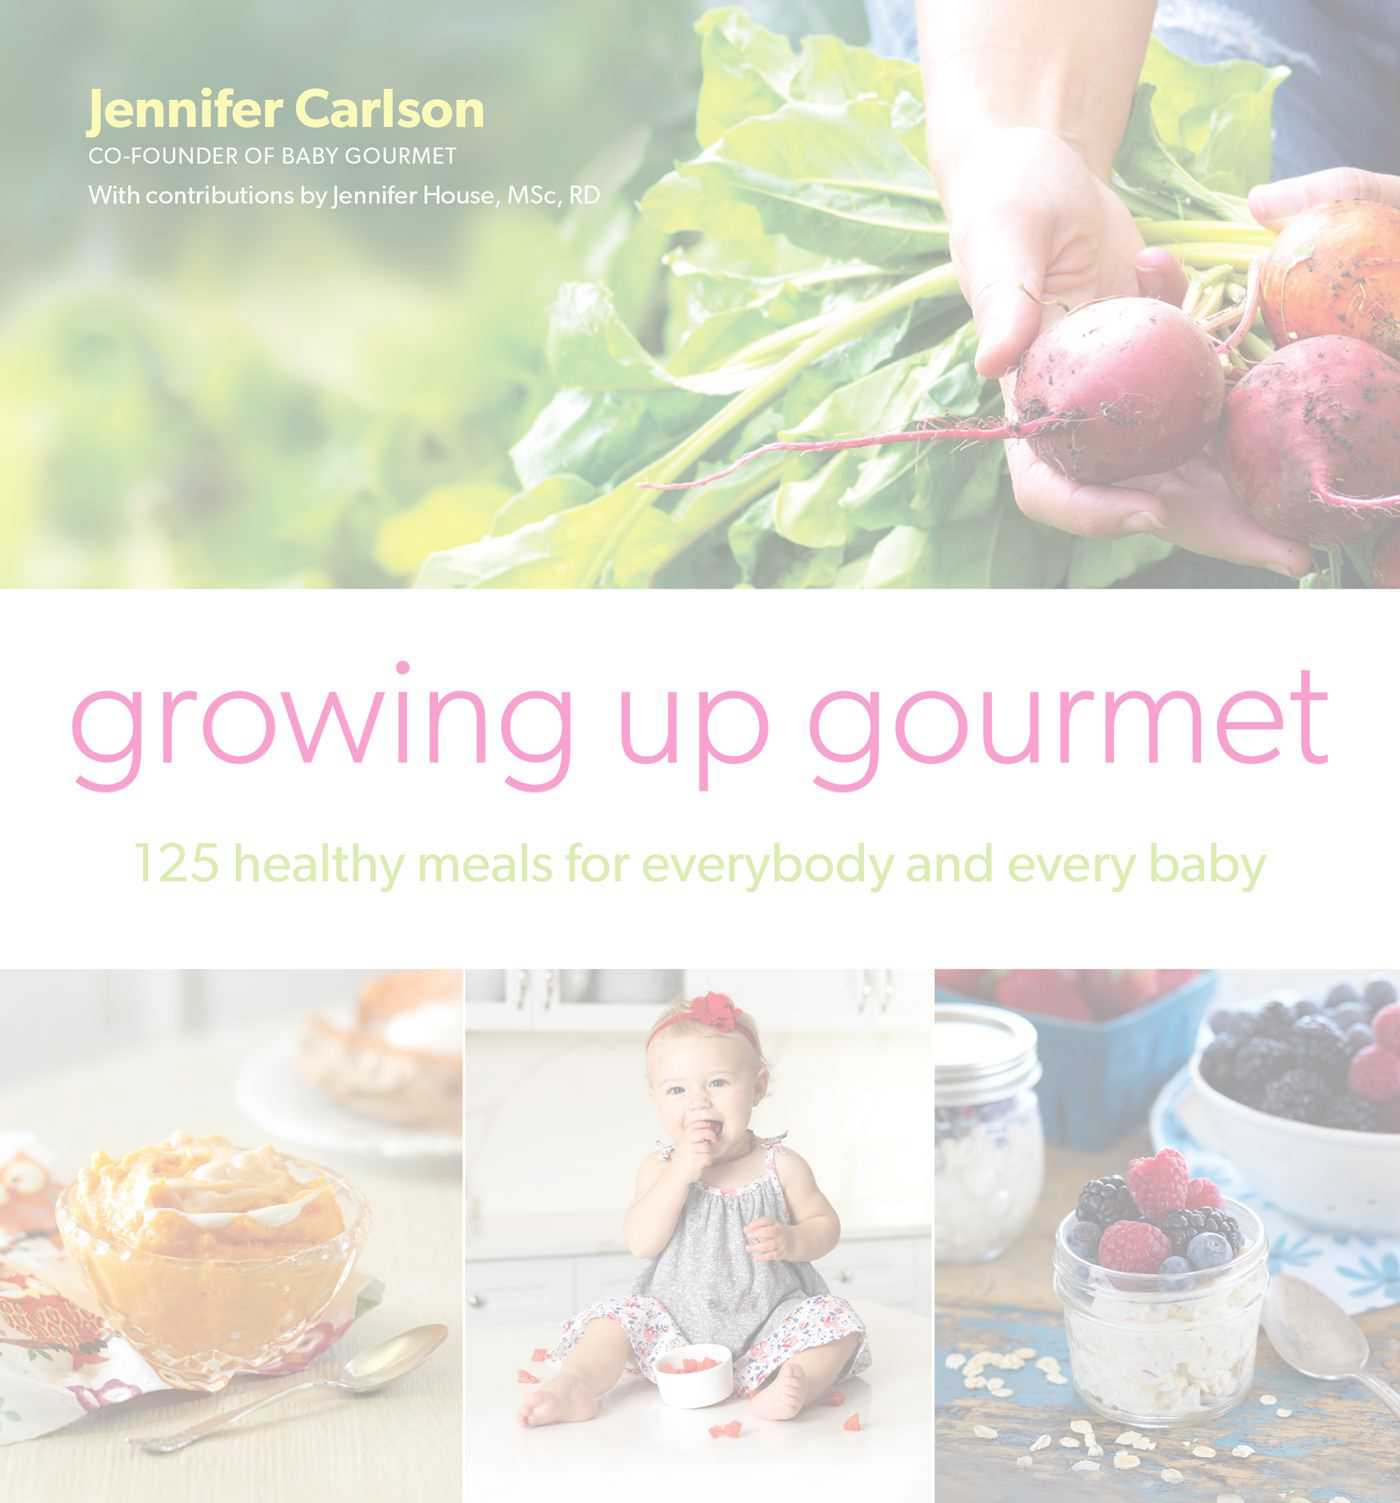 125 Healthy Meals for Everybody and Every Baby – Growing Up Gourmet by Jennifer Carlson